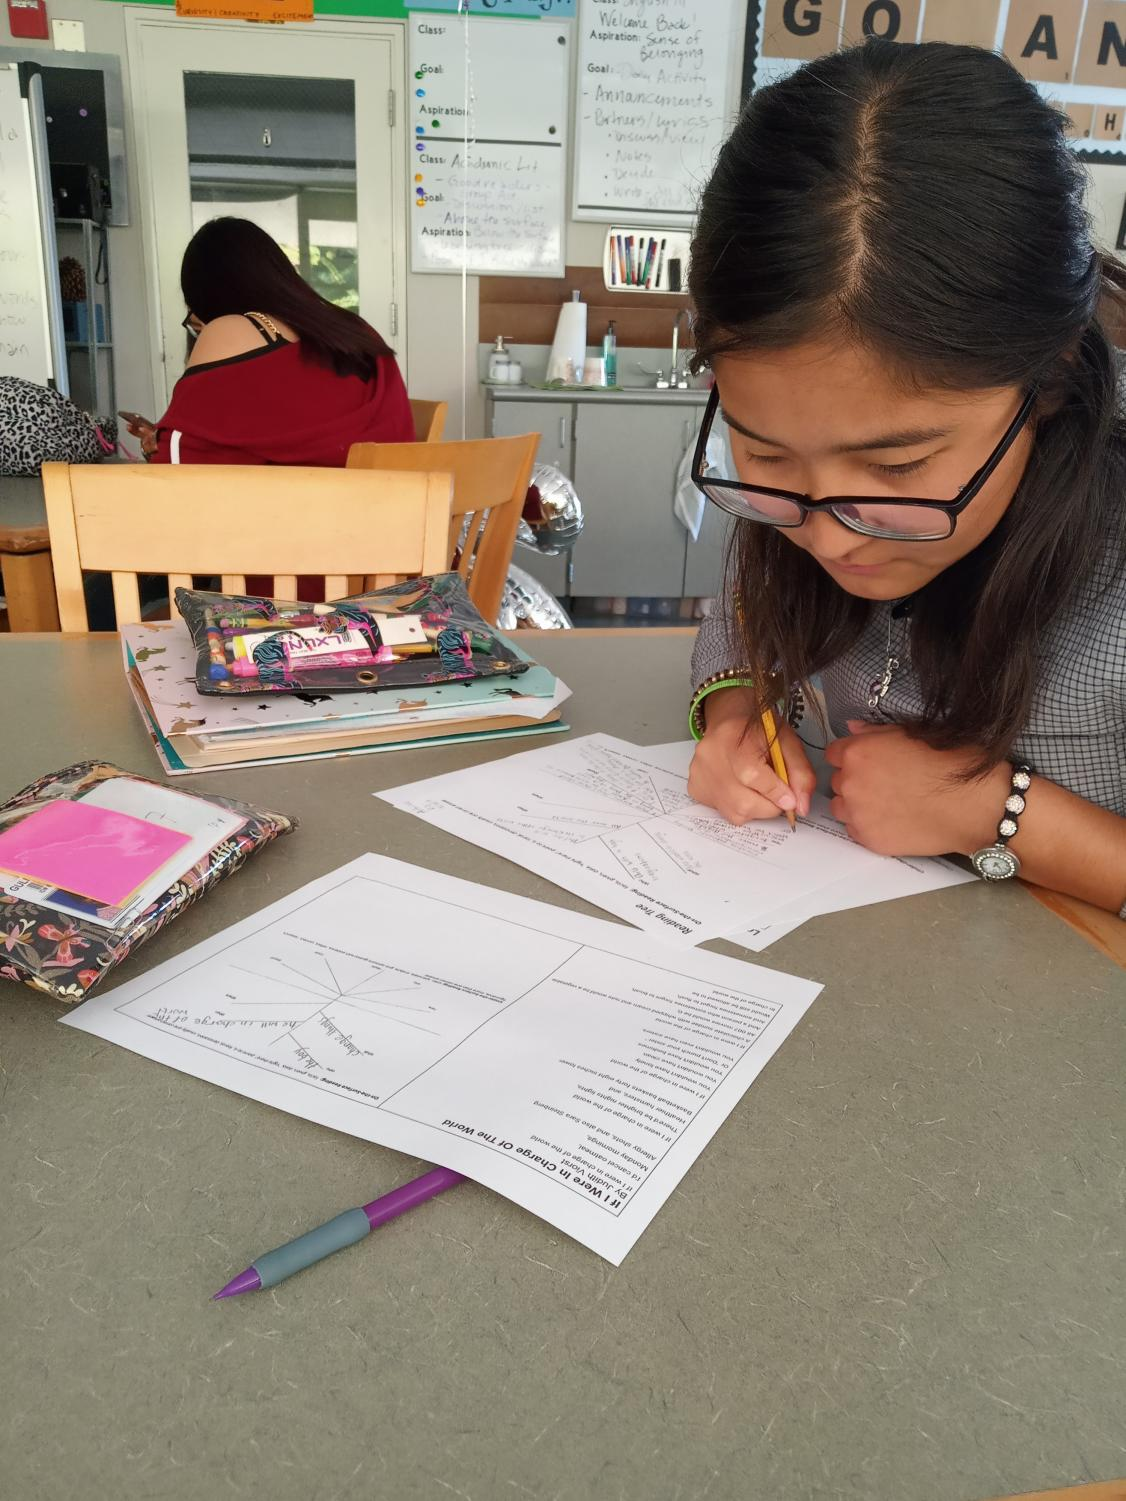 Woodside student Aibiike Abdysamatova works on her homework in the library after school.